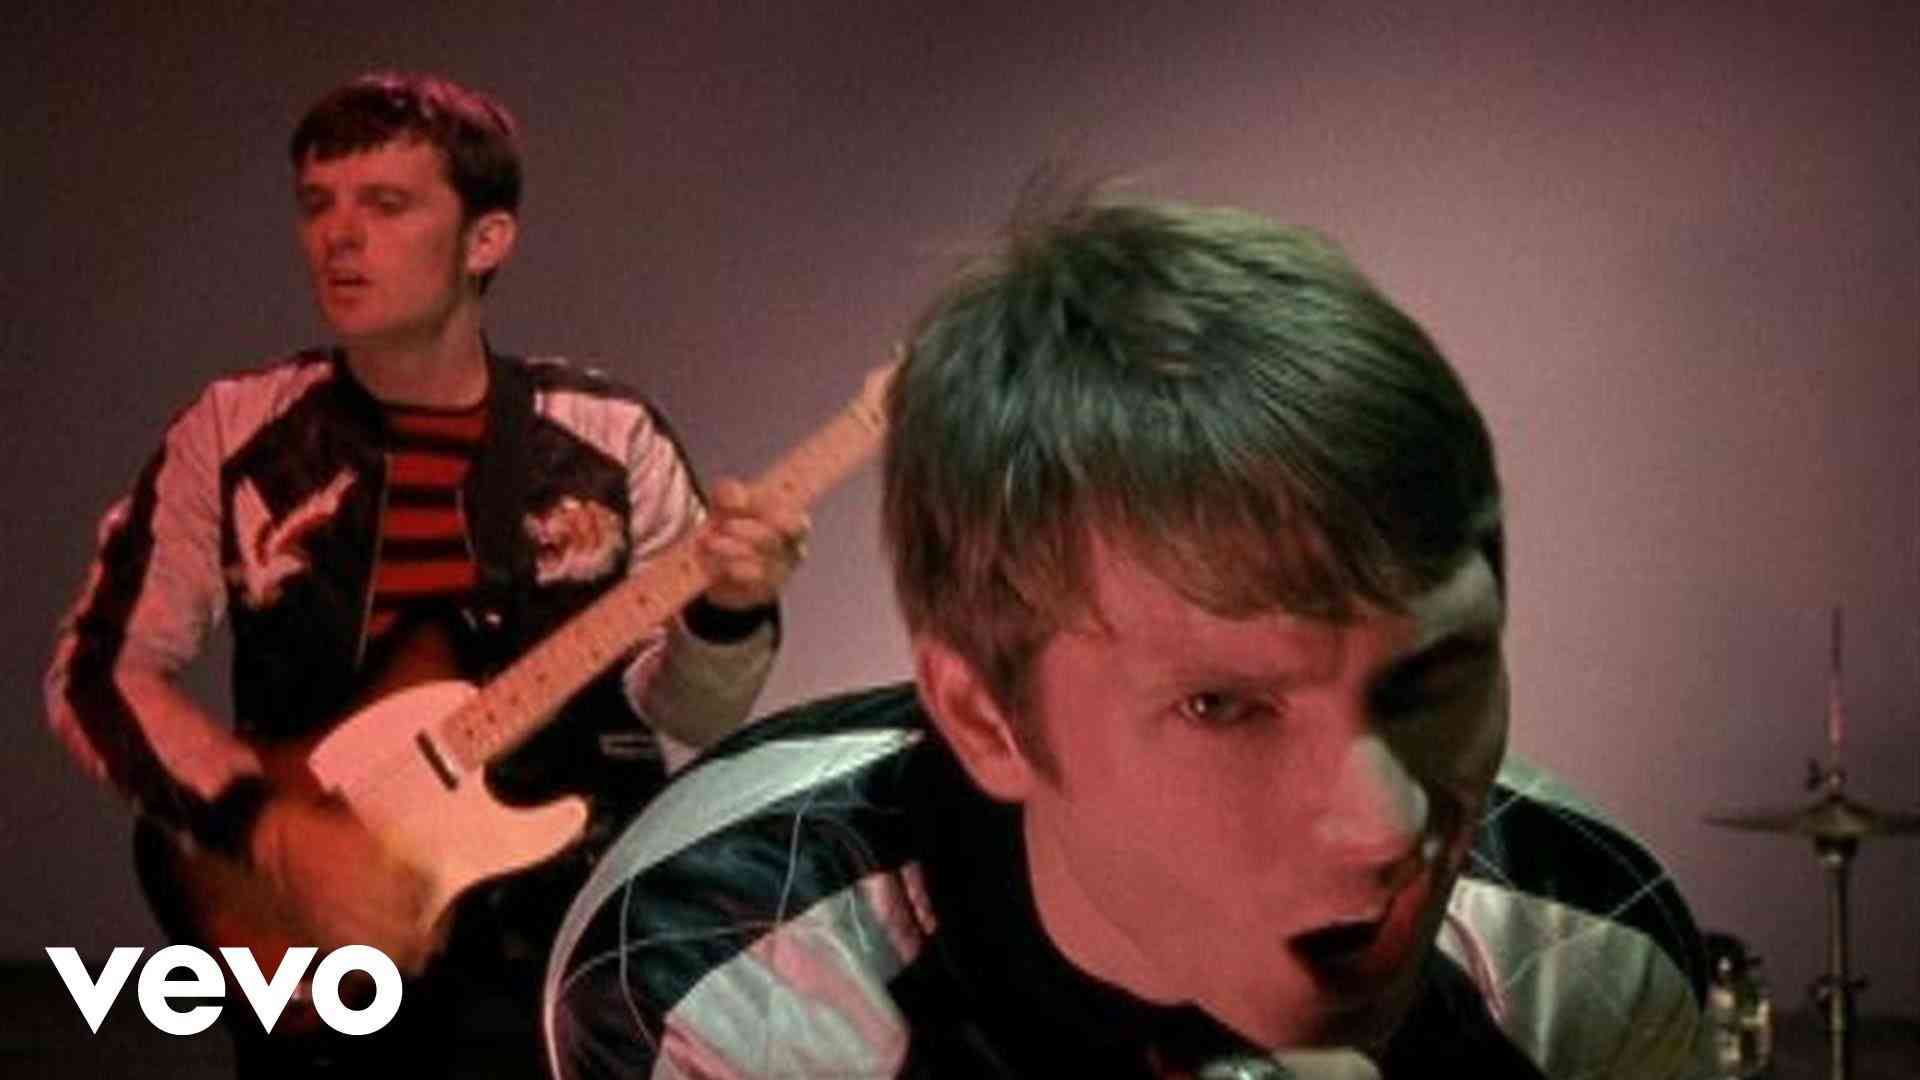 Franz Ferdinand - Do You Want To (Video) - YouTube